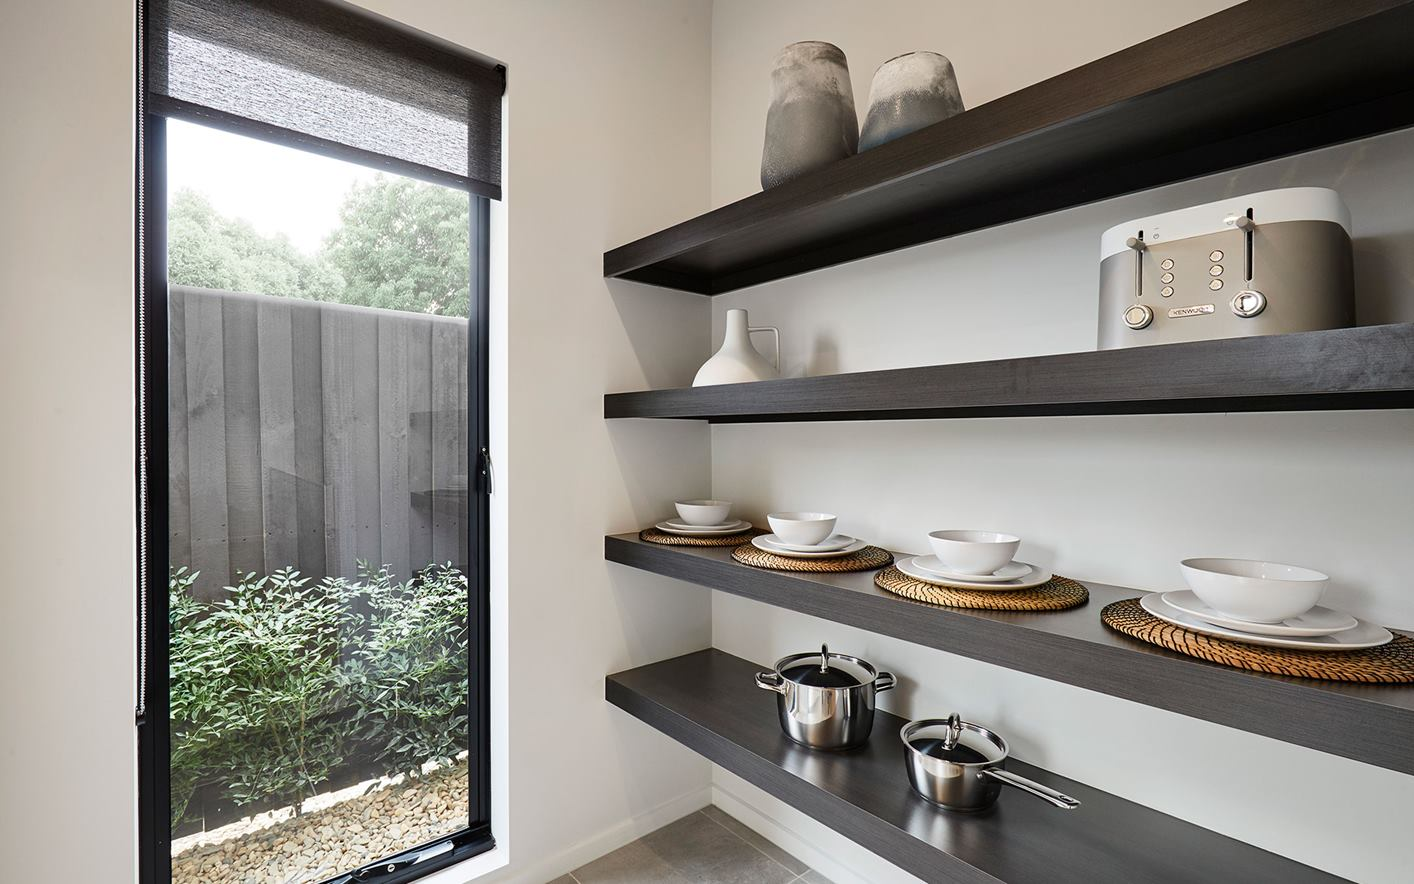 Sienna Home Design Pantry at Airds Display Village